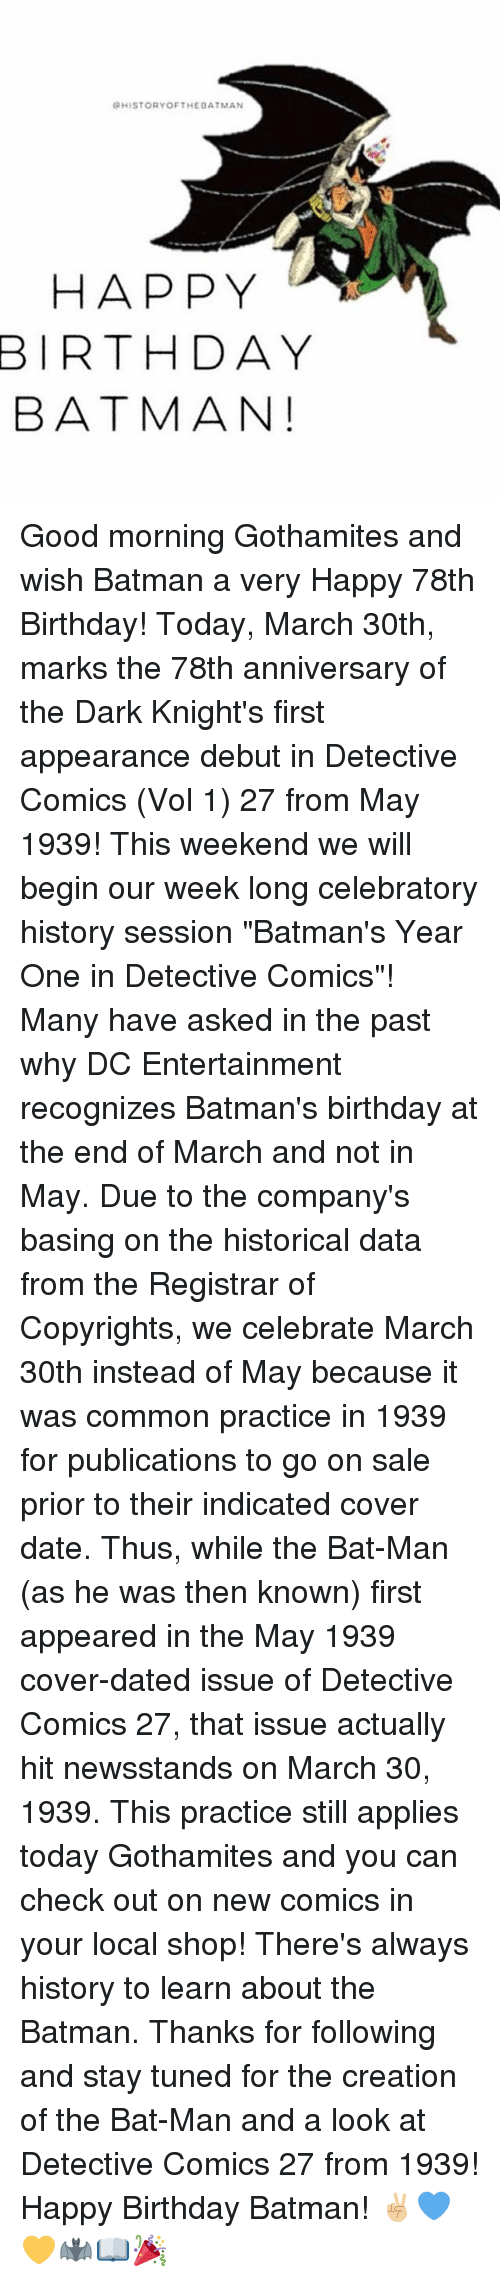 """bat man: QHISTORY OF THE BATMAN  HAPPY  BIRTHDAY  BATMAN! Good morning Gothamites and wish Batman a very Happy 78th Birthday! Today, March 30th, marks the 78th anniversary of the Dark Knight's first appearance debut in Detective Comics (Vol 1) 27 from May 1939! This weekend we will begin our week long celebratory history session """"Batman's Year One in Detective Comics""""! Many have asked in the past why DC Entertainment recognizes Batman's birthday at the end of March and not in May. Due to the company's basing on the historical data from the Registrar of Copyrights, we celebrate March 30th instead of May because it was common practice in 1939 for publications to go on sale prior to their indicated cover date. Thus, while the Bat-Man (as he was then known) first appeared in the May 1939 cover-dated issue of Detective Comics 27, that issue actually hit newsstands on March 30, 1939. This practice still applies today Gothamites and you can check out on new comics in your local shop! There's always history to learn about the Batman. Thanks for following and stay tuned for the creation of the Bat-Man and a look at Detective Comics 27 from 1939! Happy Birthday Batman! ✌🏼️💙💛🦇📖🎉"""